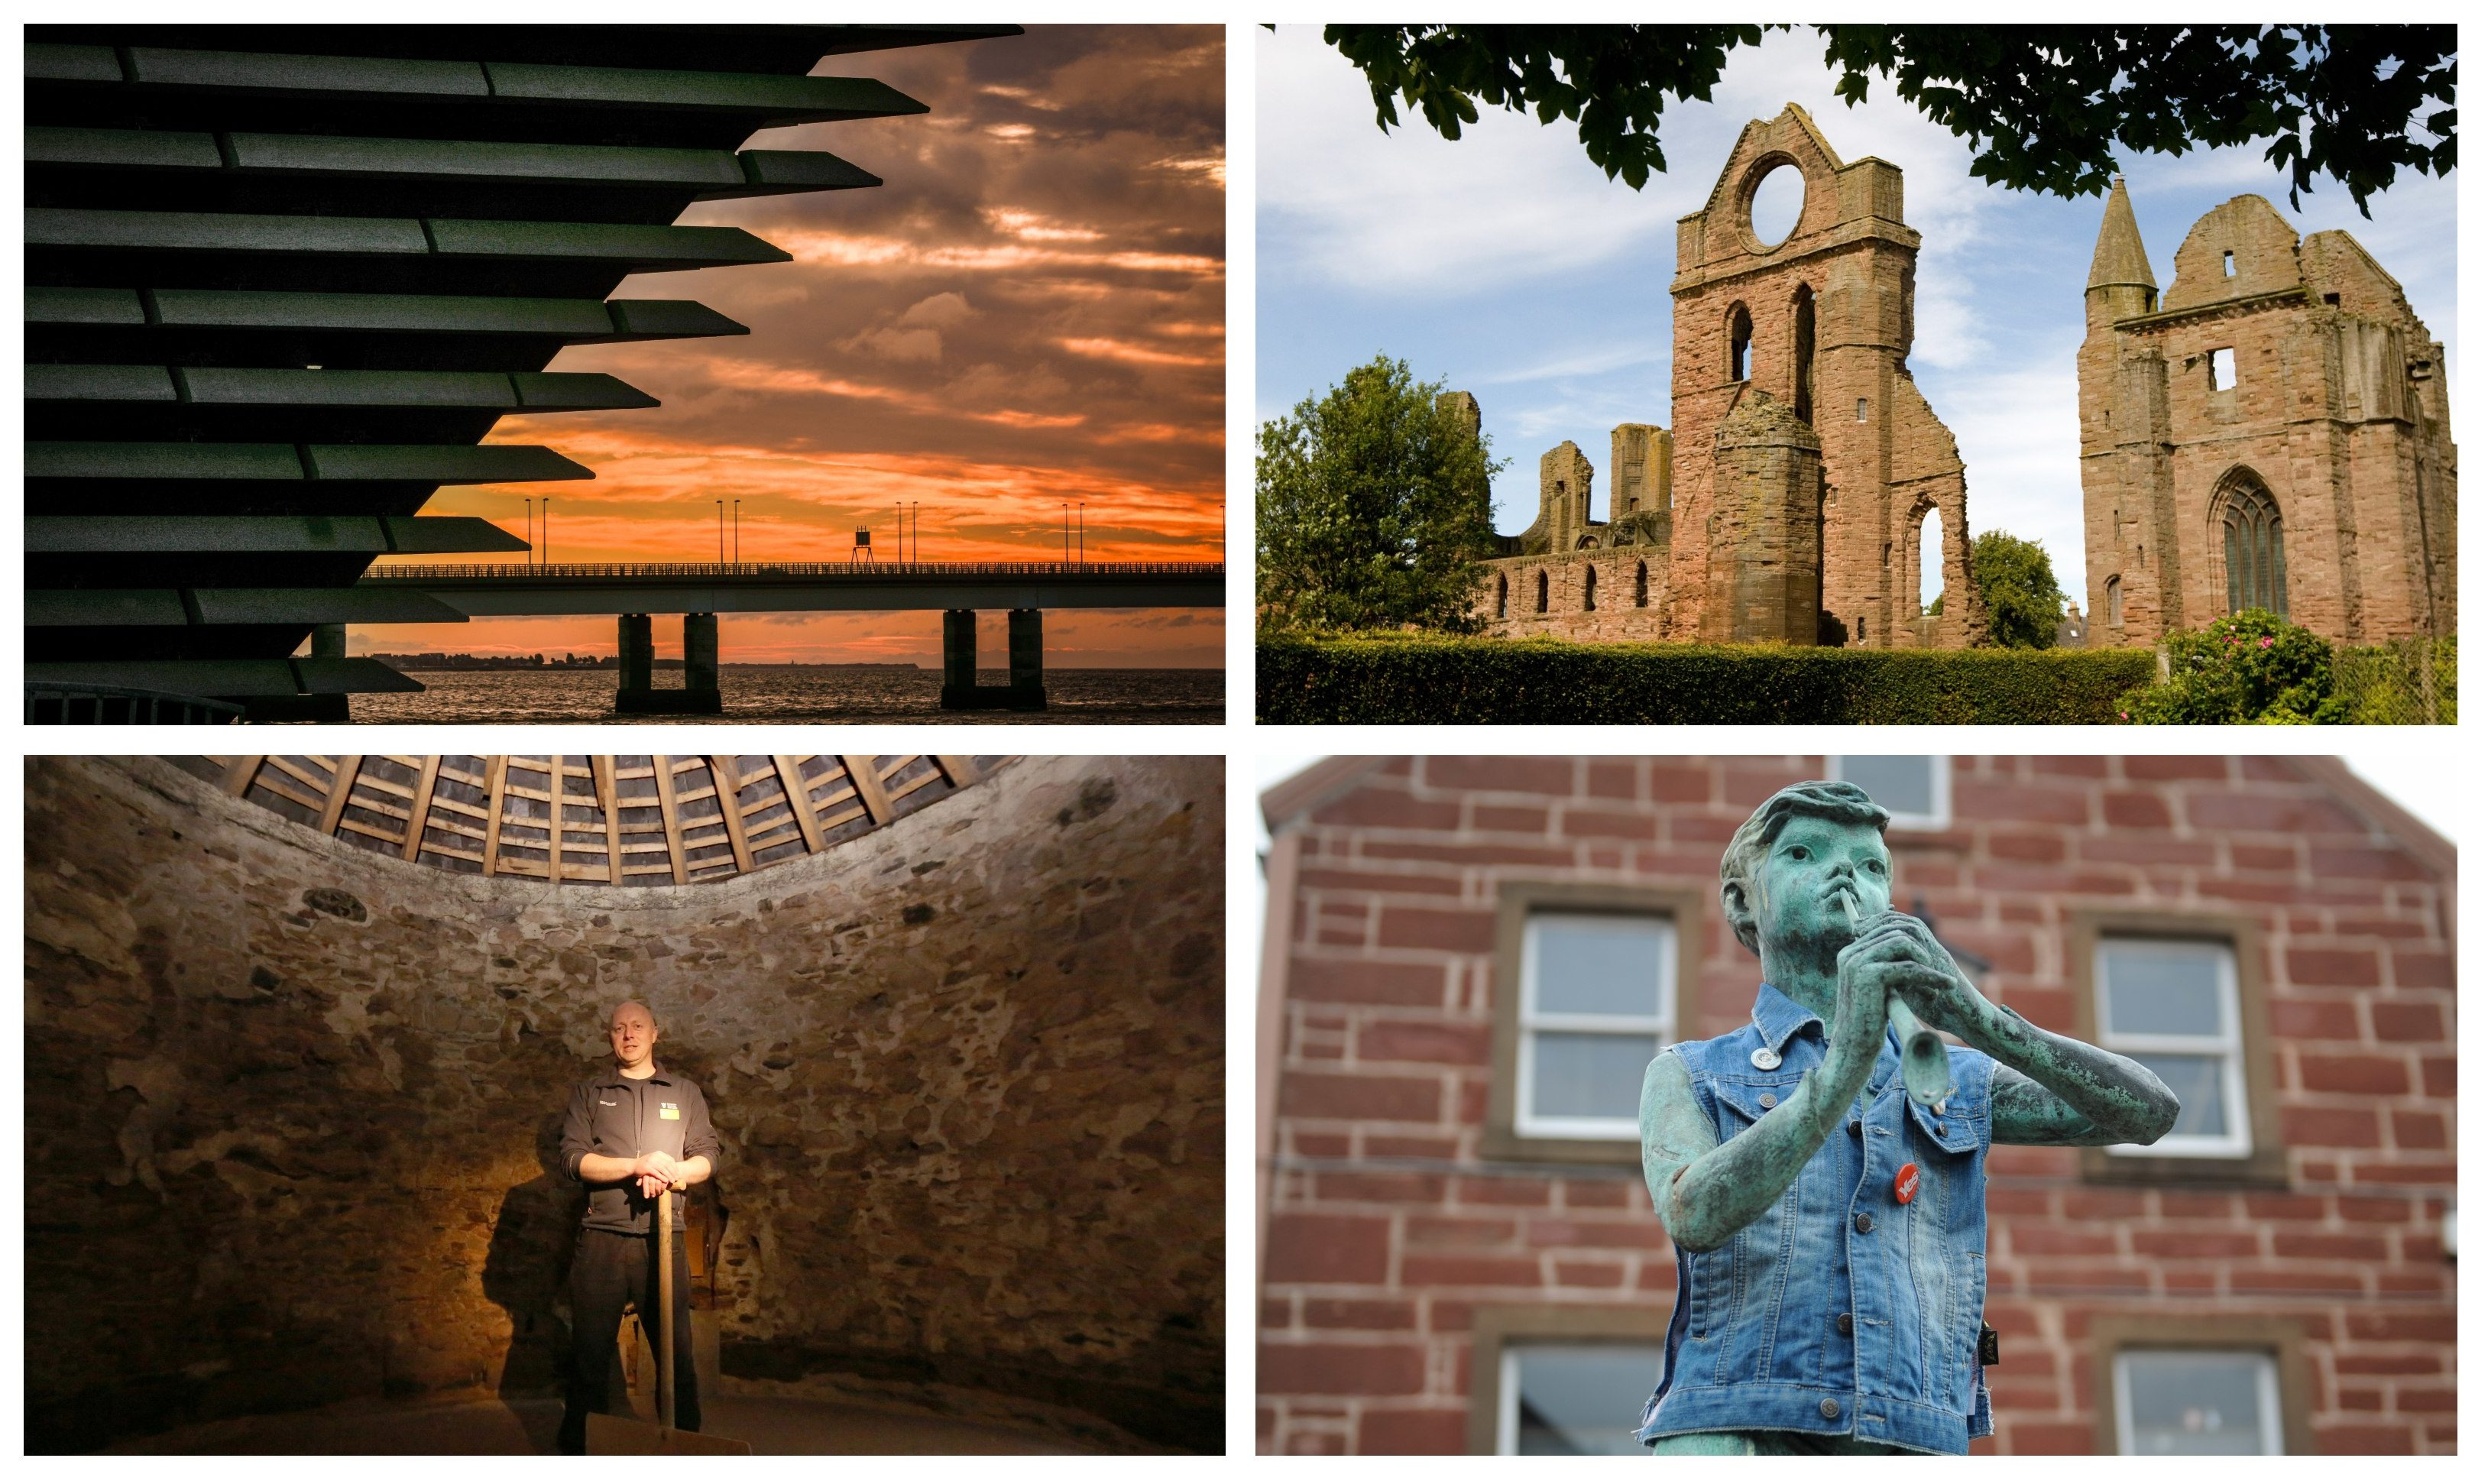 There has been a huge surge in visitor numbers to attractions across Dundee and Angus following the V&A's opening. Pictured: The V&A (top left) and some of the locations which have seen a boost in visitors - Arbroath Abbey (top right), Kirriemuir (bottom right) and Barry Mill (bottom left).